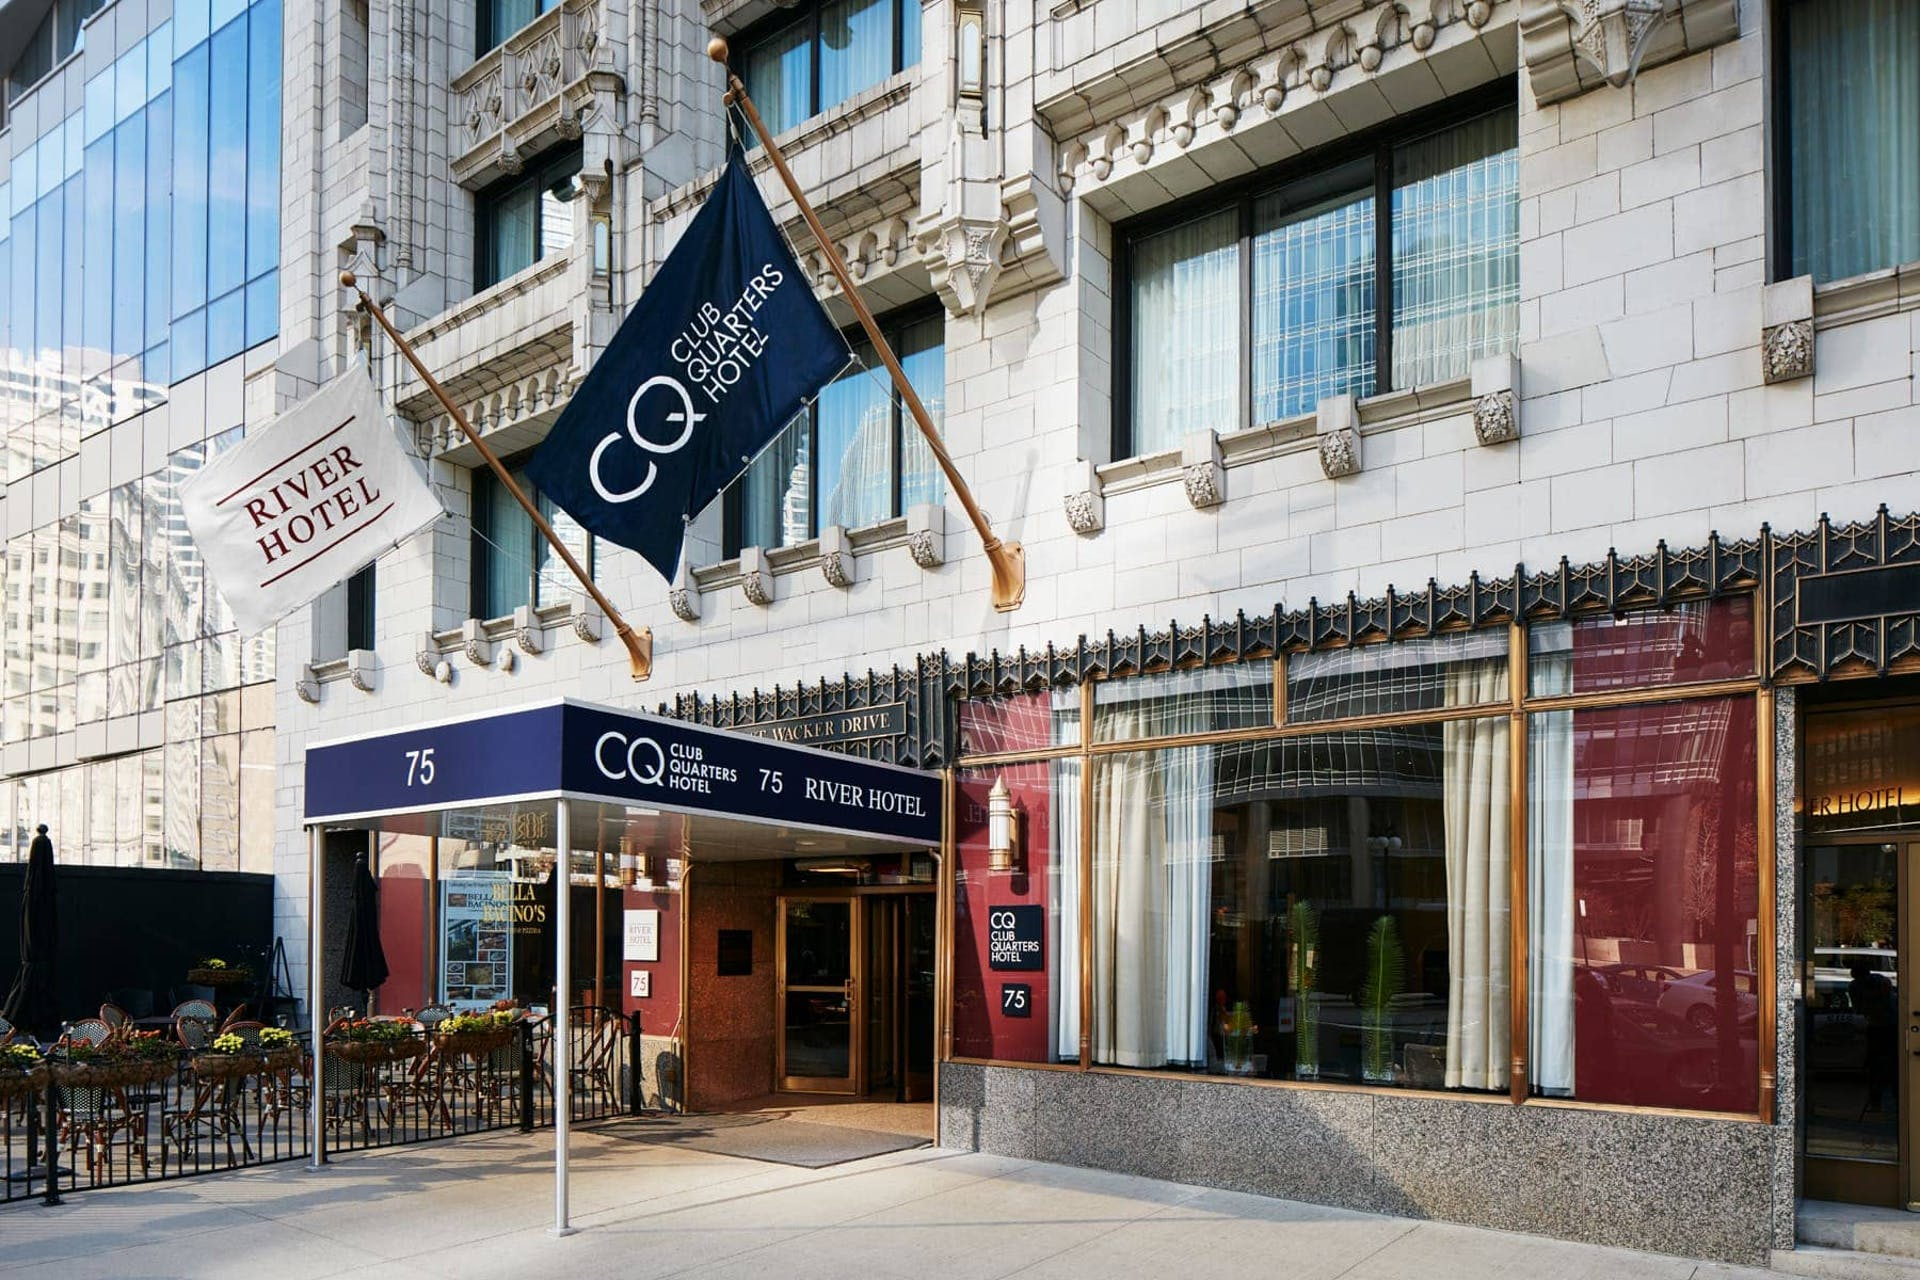 Exterior of CQ Hotel, Wacker at Michigan, Chicago